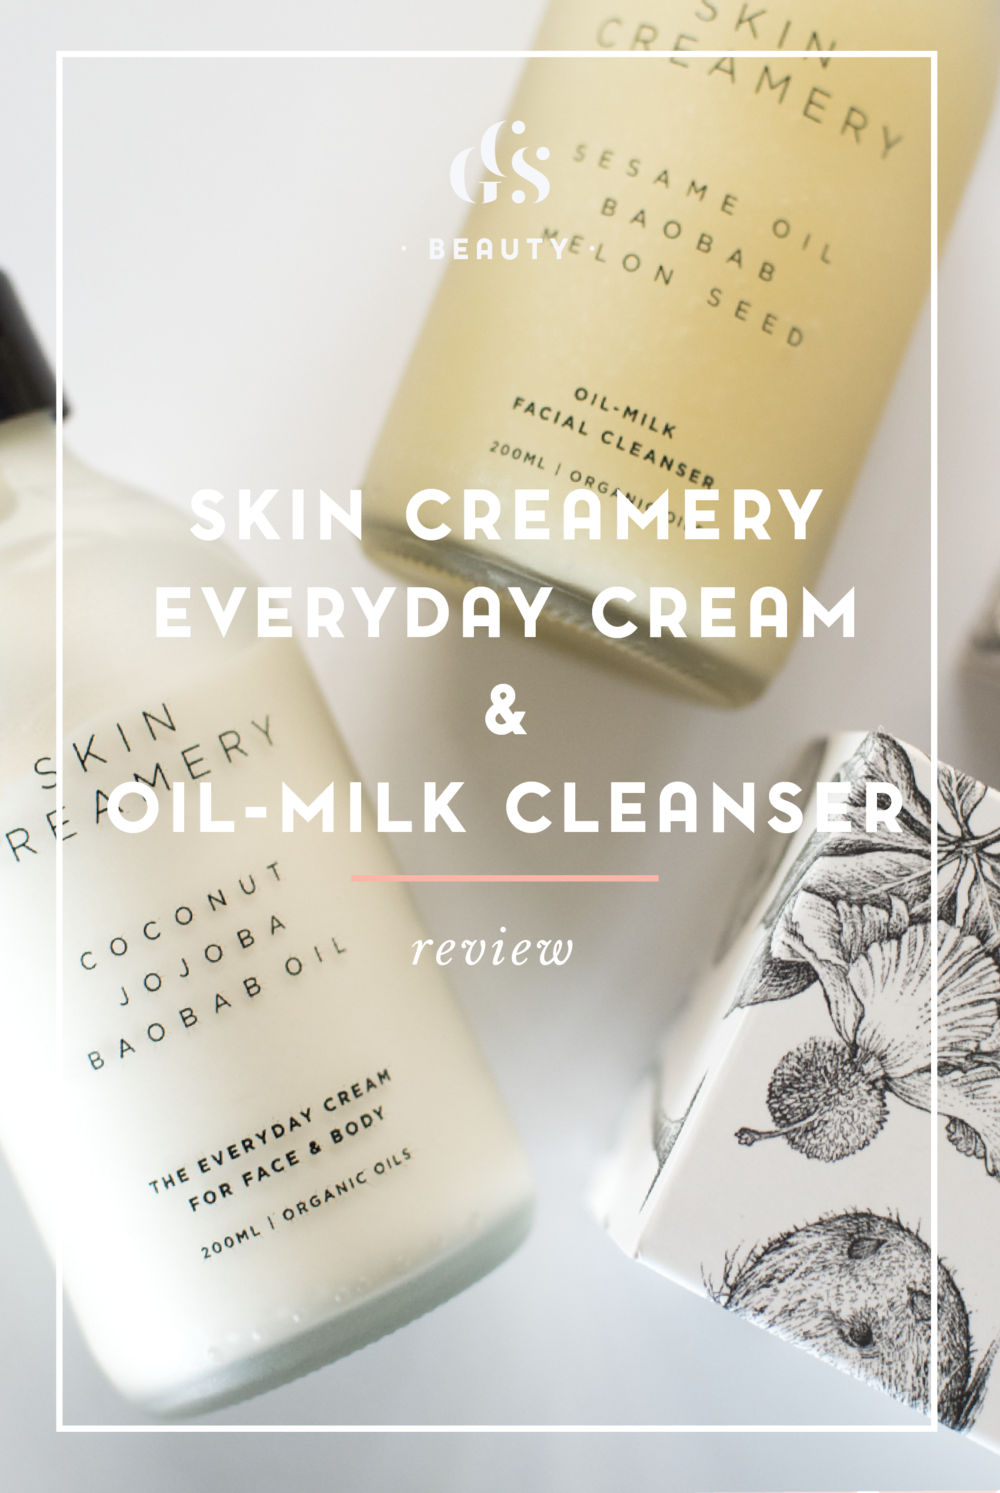 Skin Creamery Everyday Cream & Oil Milk Cleanser Review Flatlay by RoxyHutton of CGScreative CityGirlSearching Blog-01.png